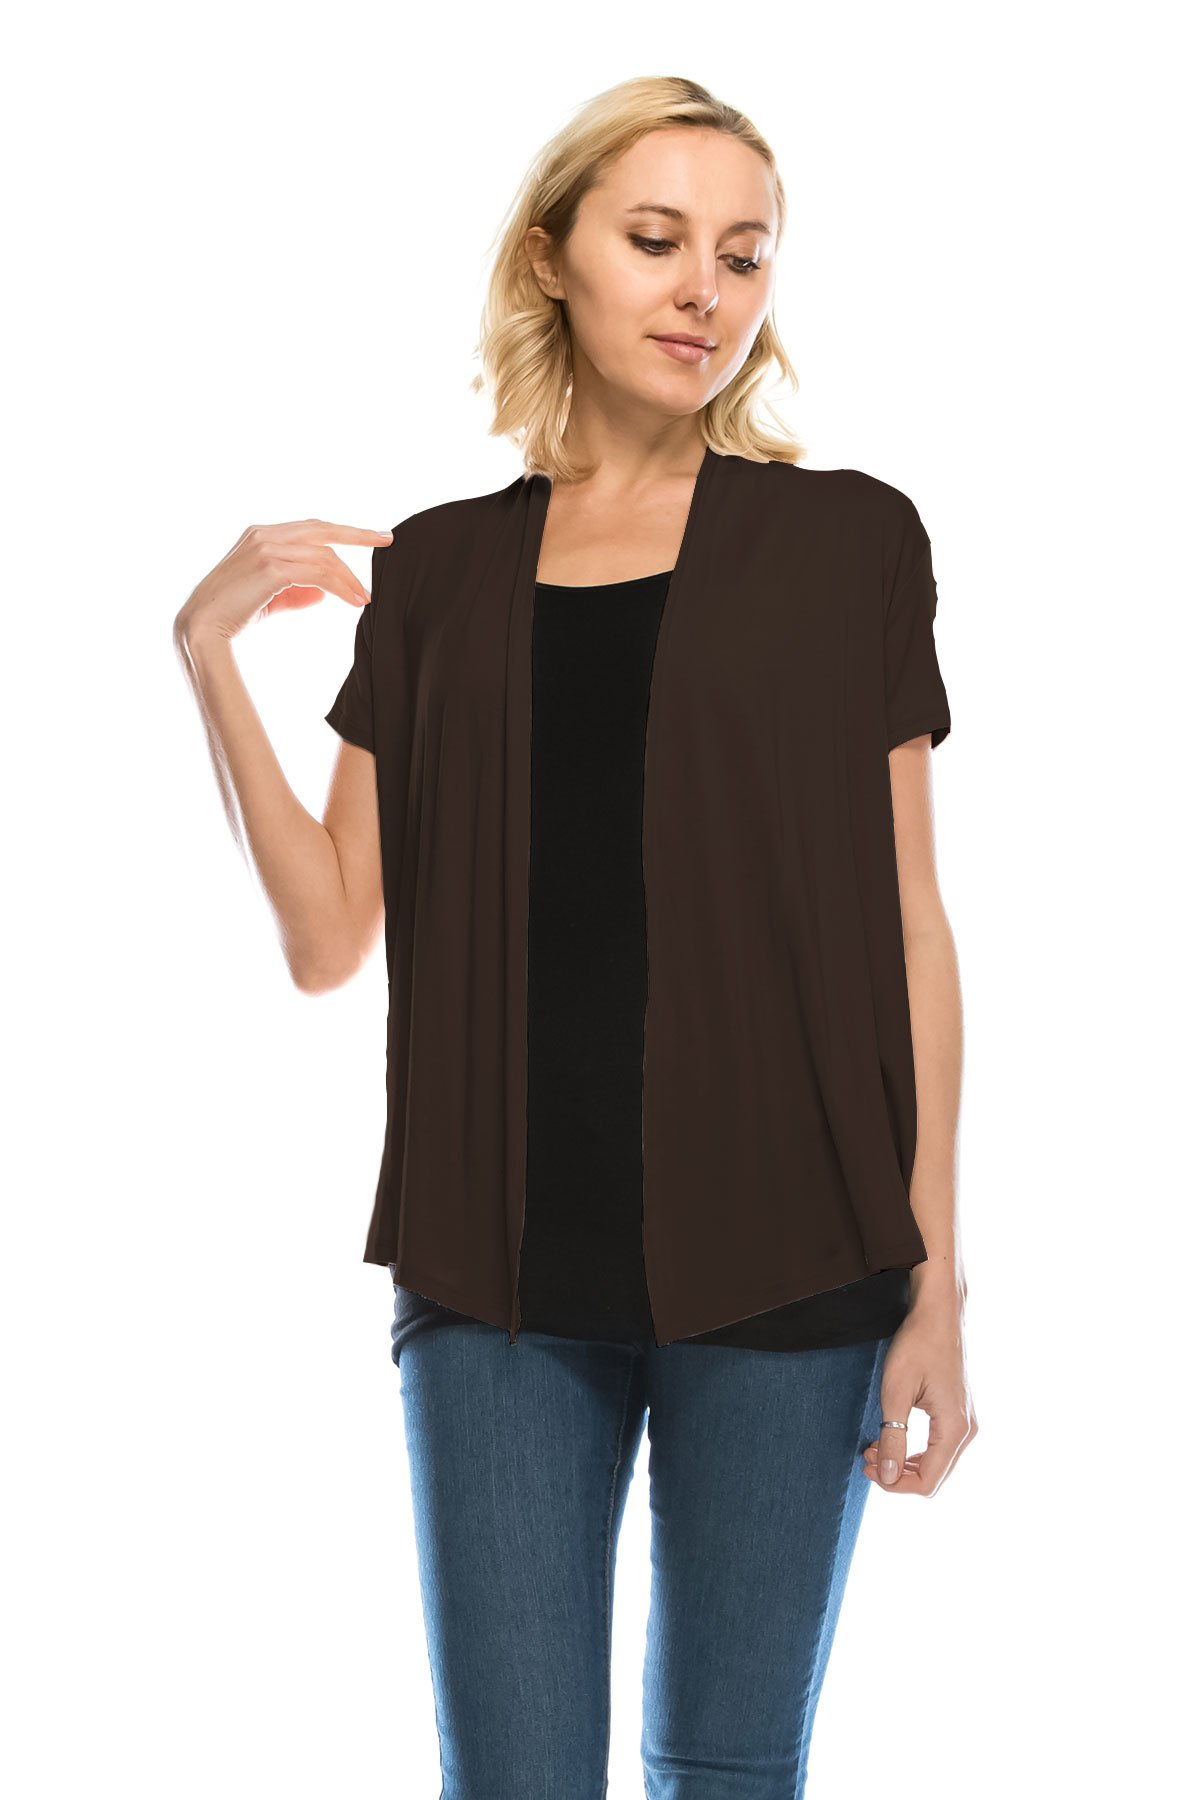 J Doe Style Women's Soft Drape Cardigan Short Sleeve Made In USA(Size :S-5X), L, Brown by J Doe Style